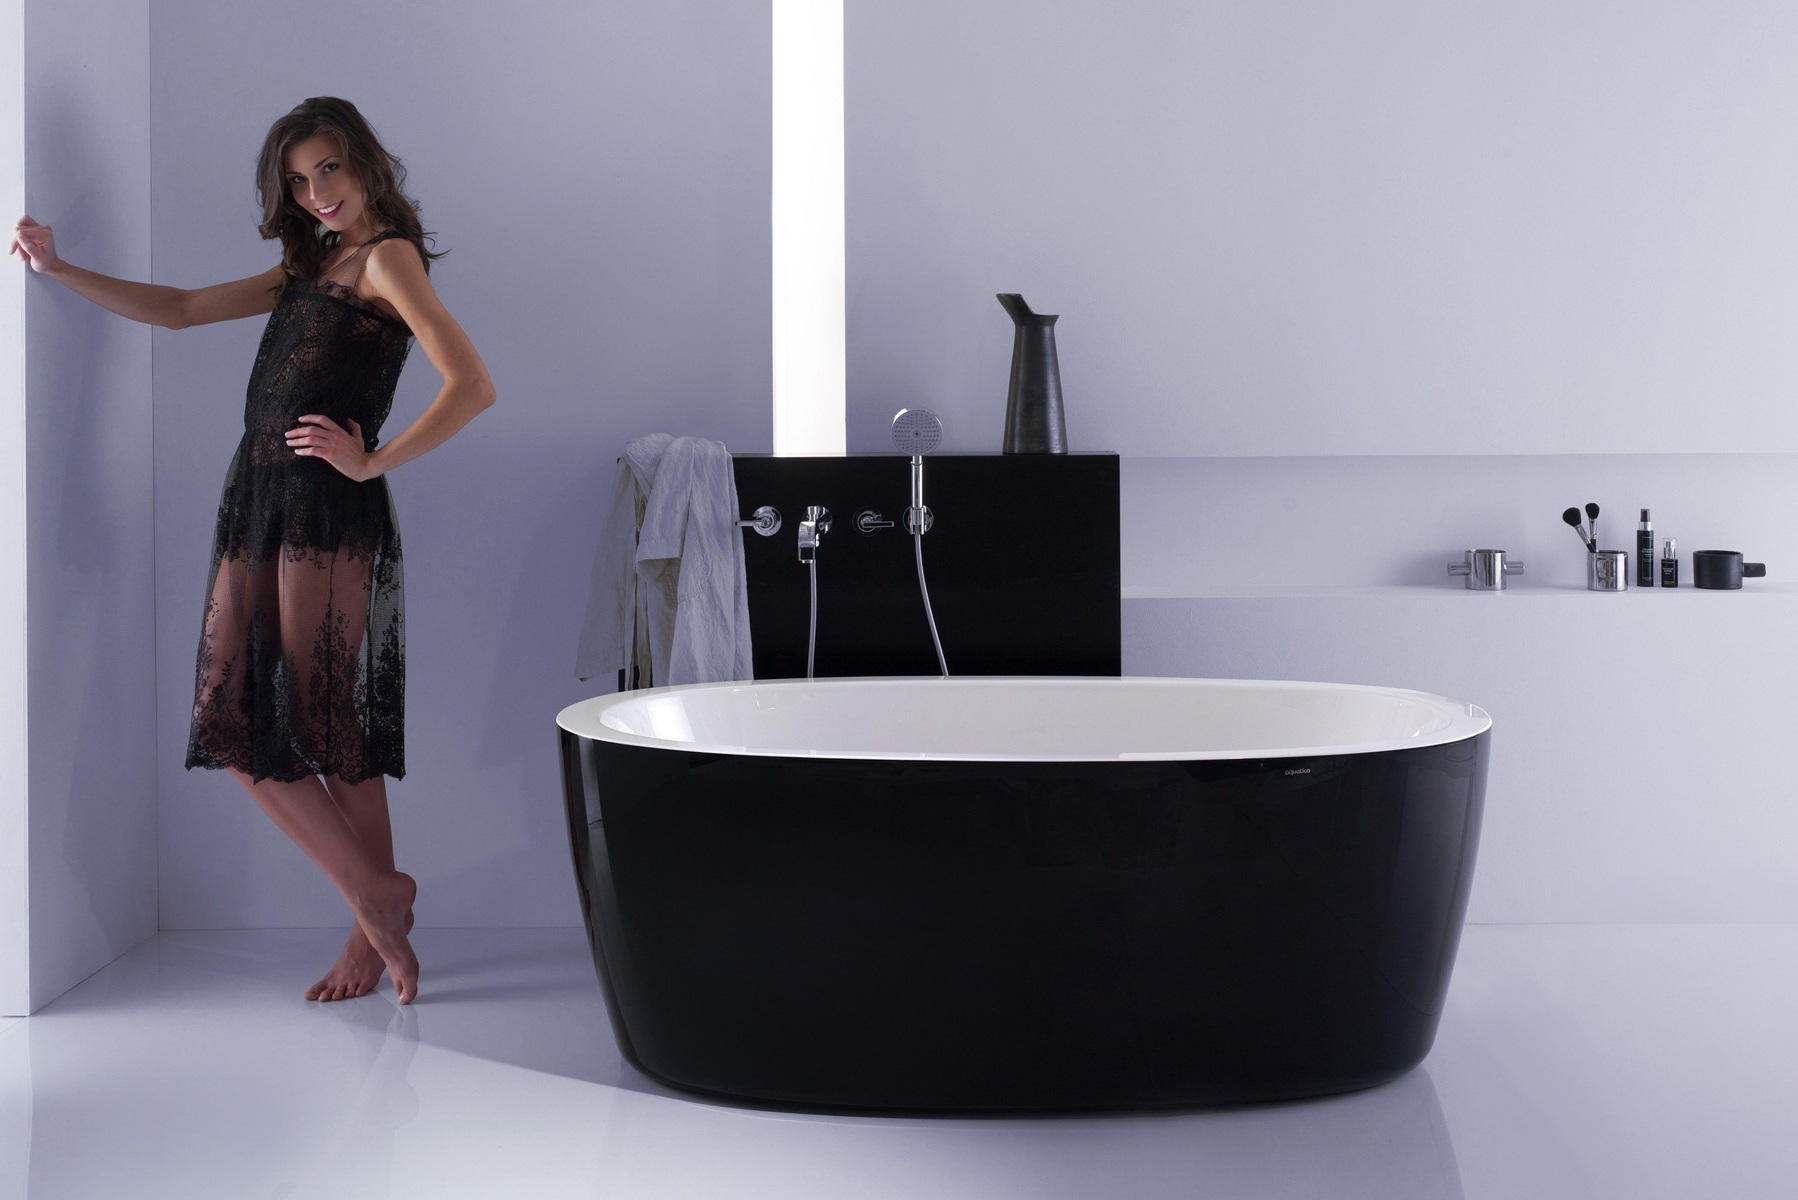 Complemented By The Black Exterior And White Interior, This Minimalistic  And Contemporary Oval Bathtub Adds Refinement To Both Traditional Or Modern  ...